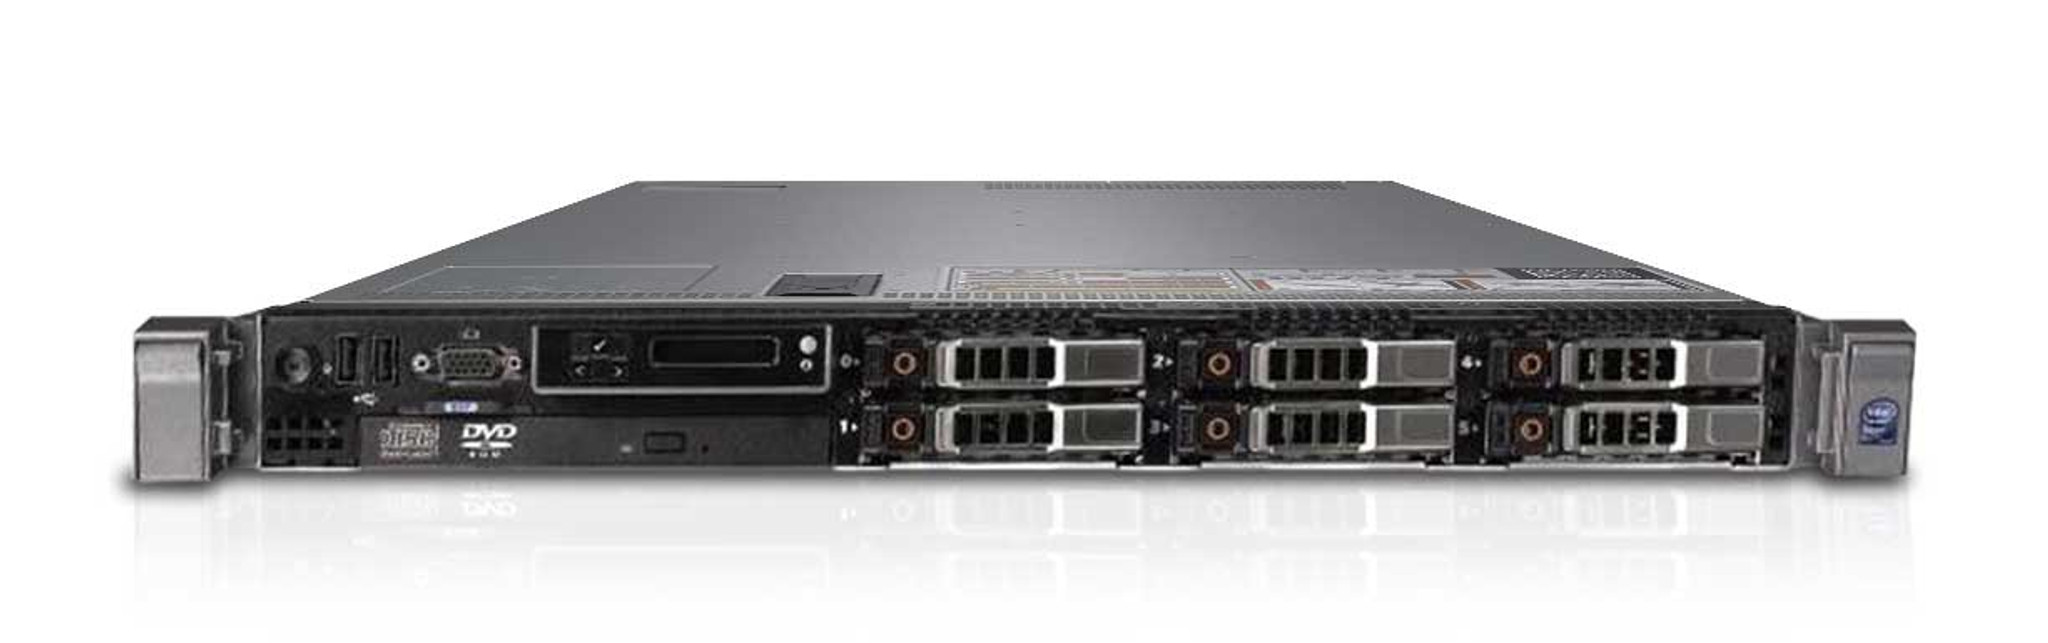 Dell PowerEdge R610 Server - Configured